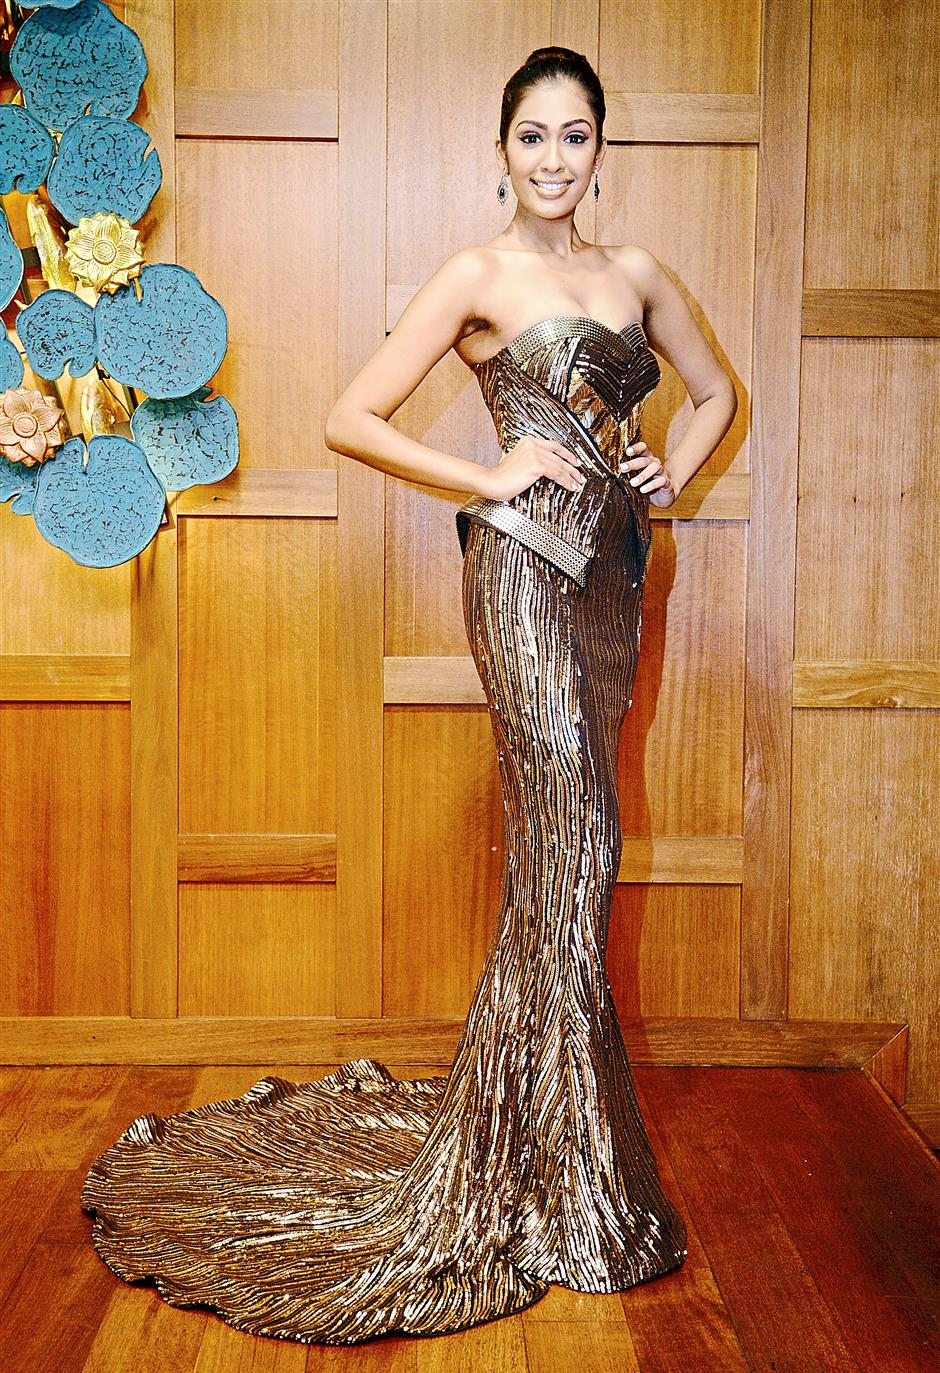 Simply divine: Beneett will be wearing the timeless bronze goddess-inspired evening gown by local designers Fiziwoo.